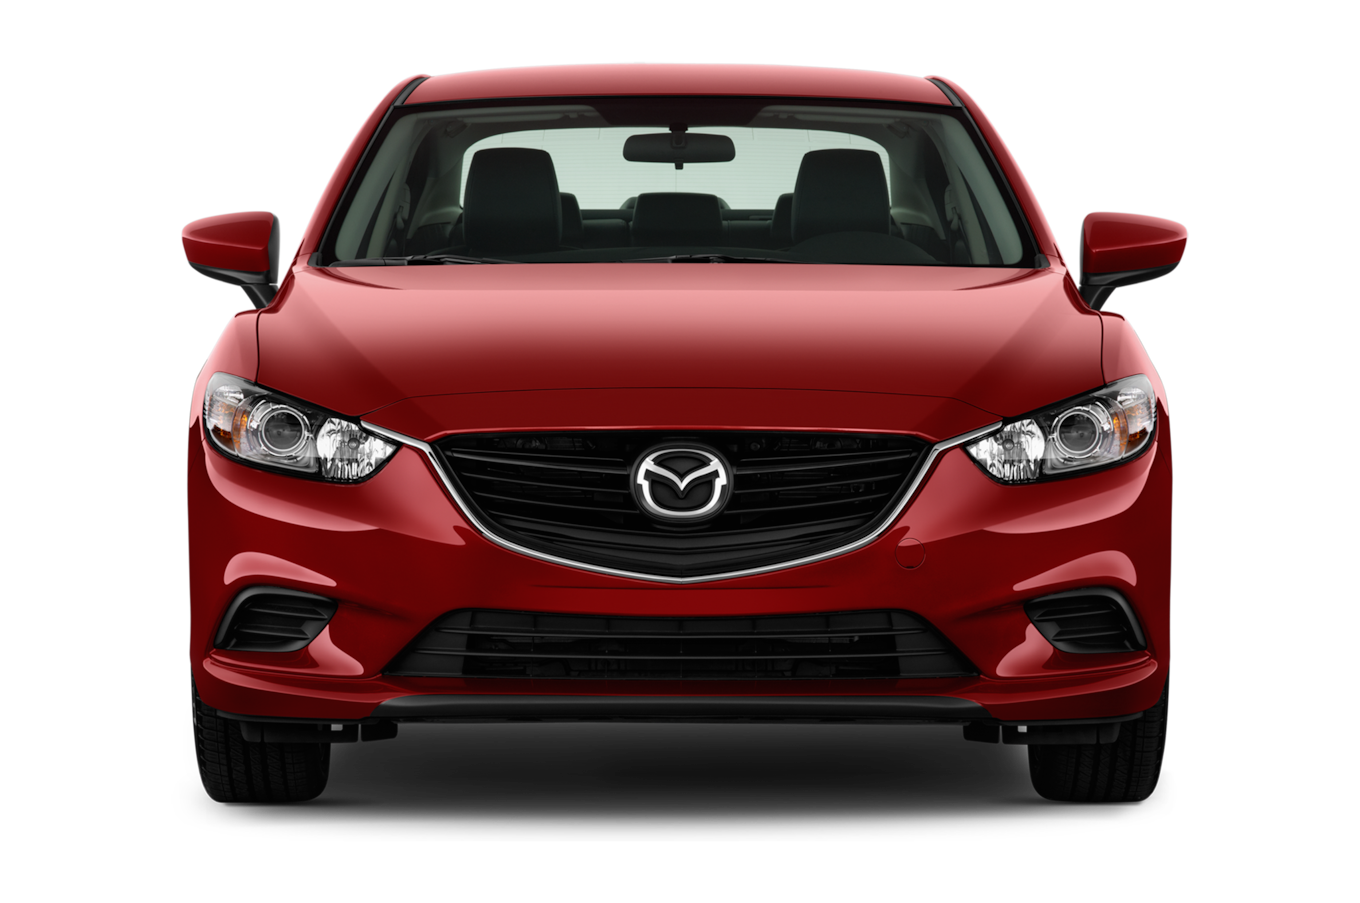 27 New New Mazda 6 2019 Uk Overview History for New Mazda 6 2019 Uk Overview